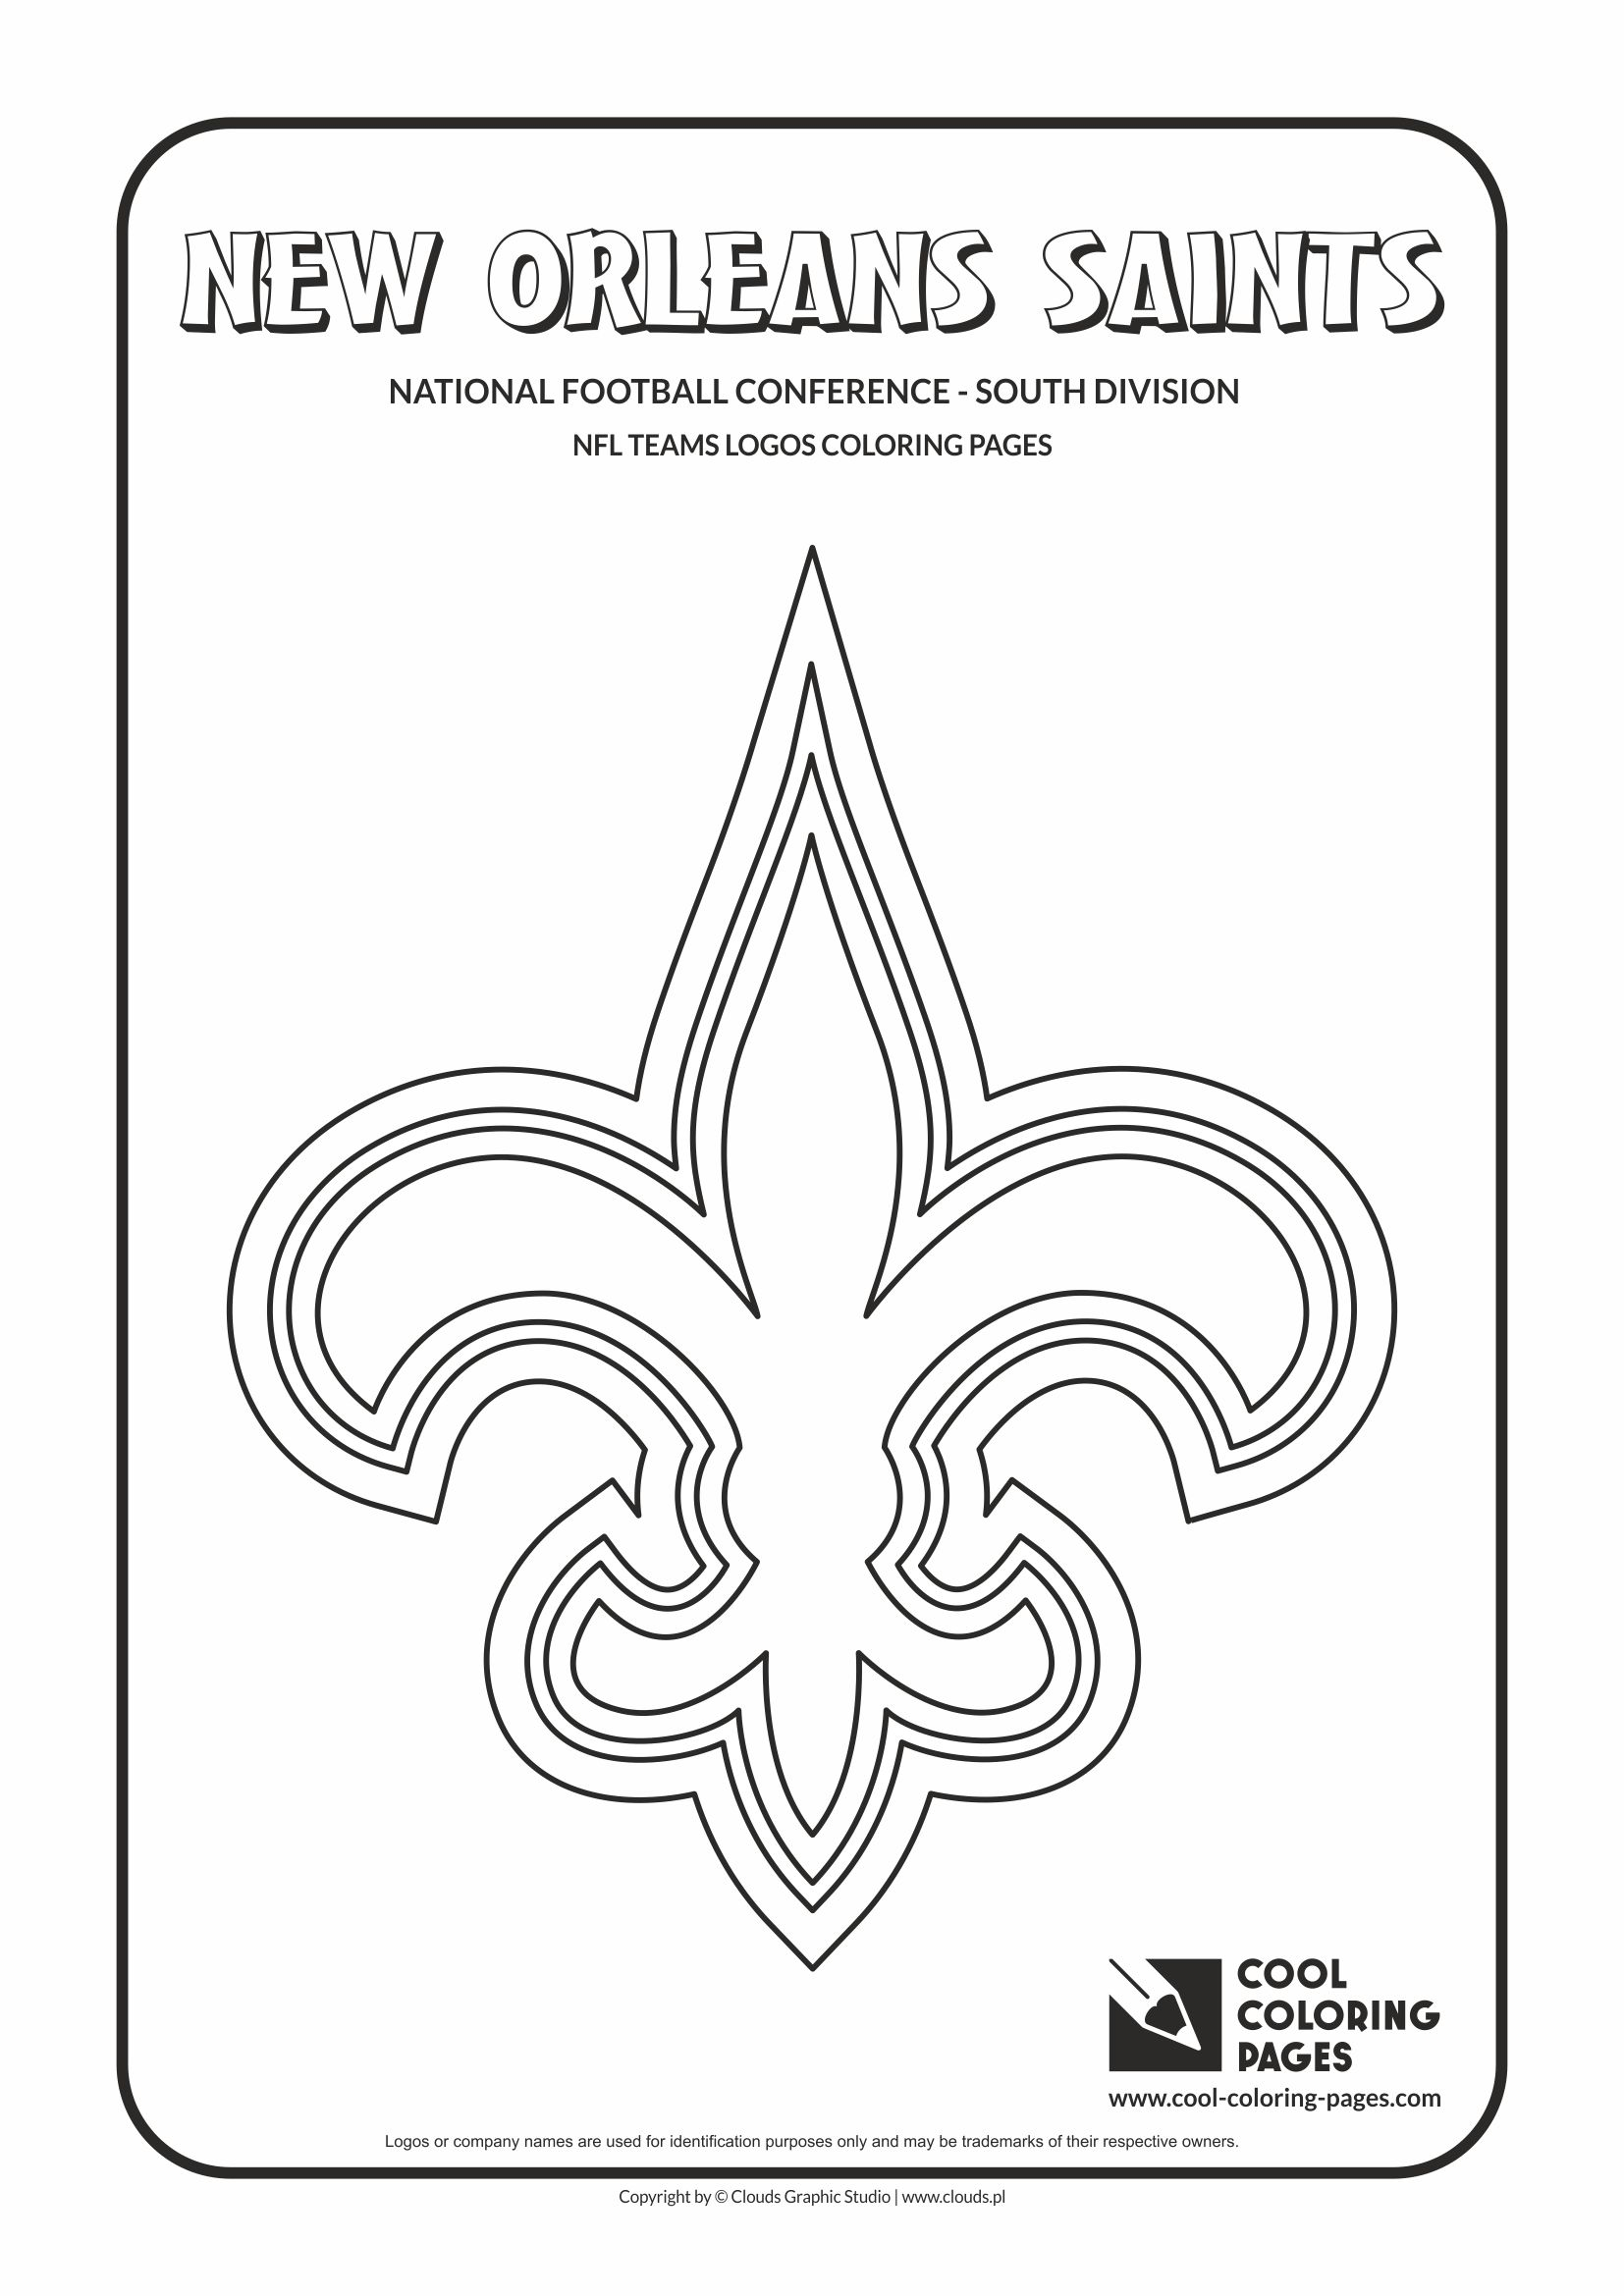 Cool Coloring Pages - NFL American Football Clubs Logos - National Football Conference - South Division / New Orleans Saints logo / Coloring page with New Orleans Saints logo